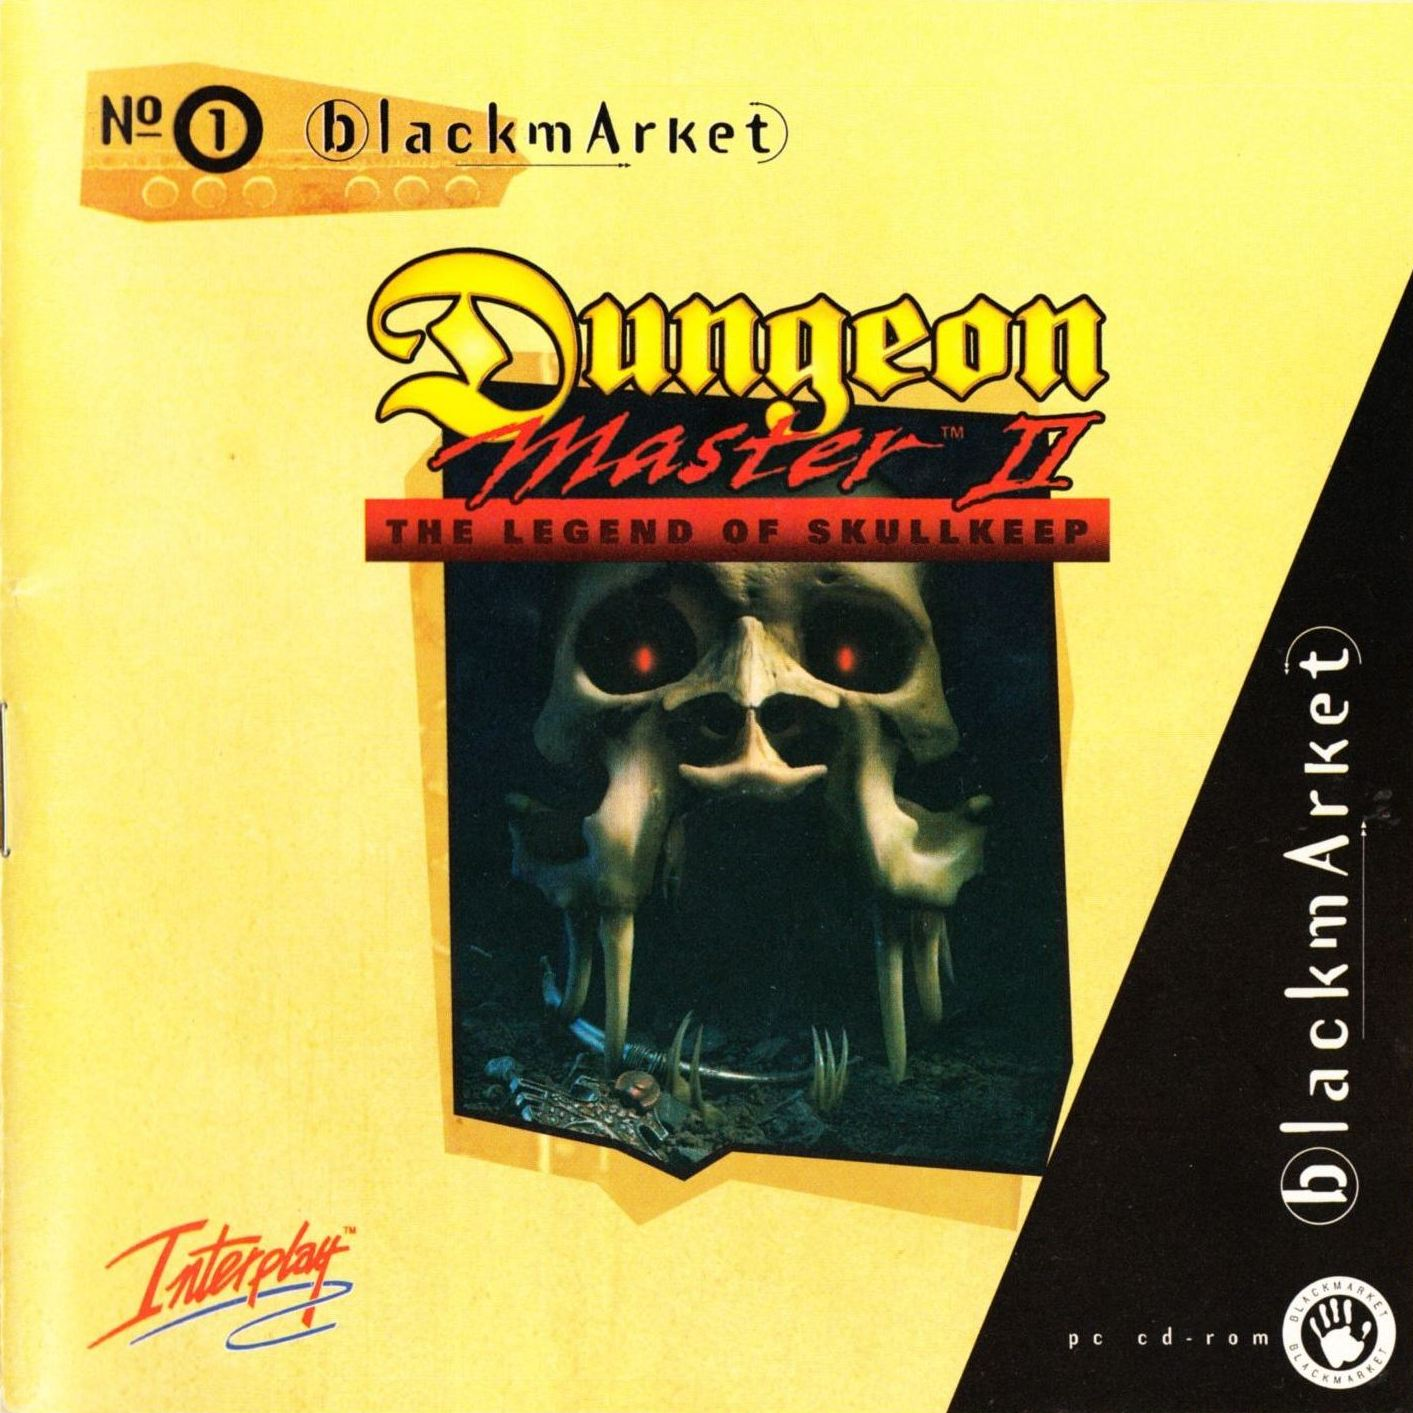 Game - Dungeon Master II - DE - PC - Blackmarket With Booklet - Booklet - Page 001 - Scan